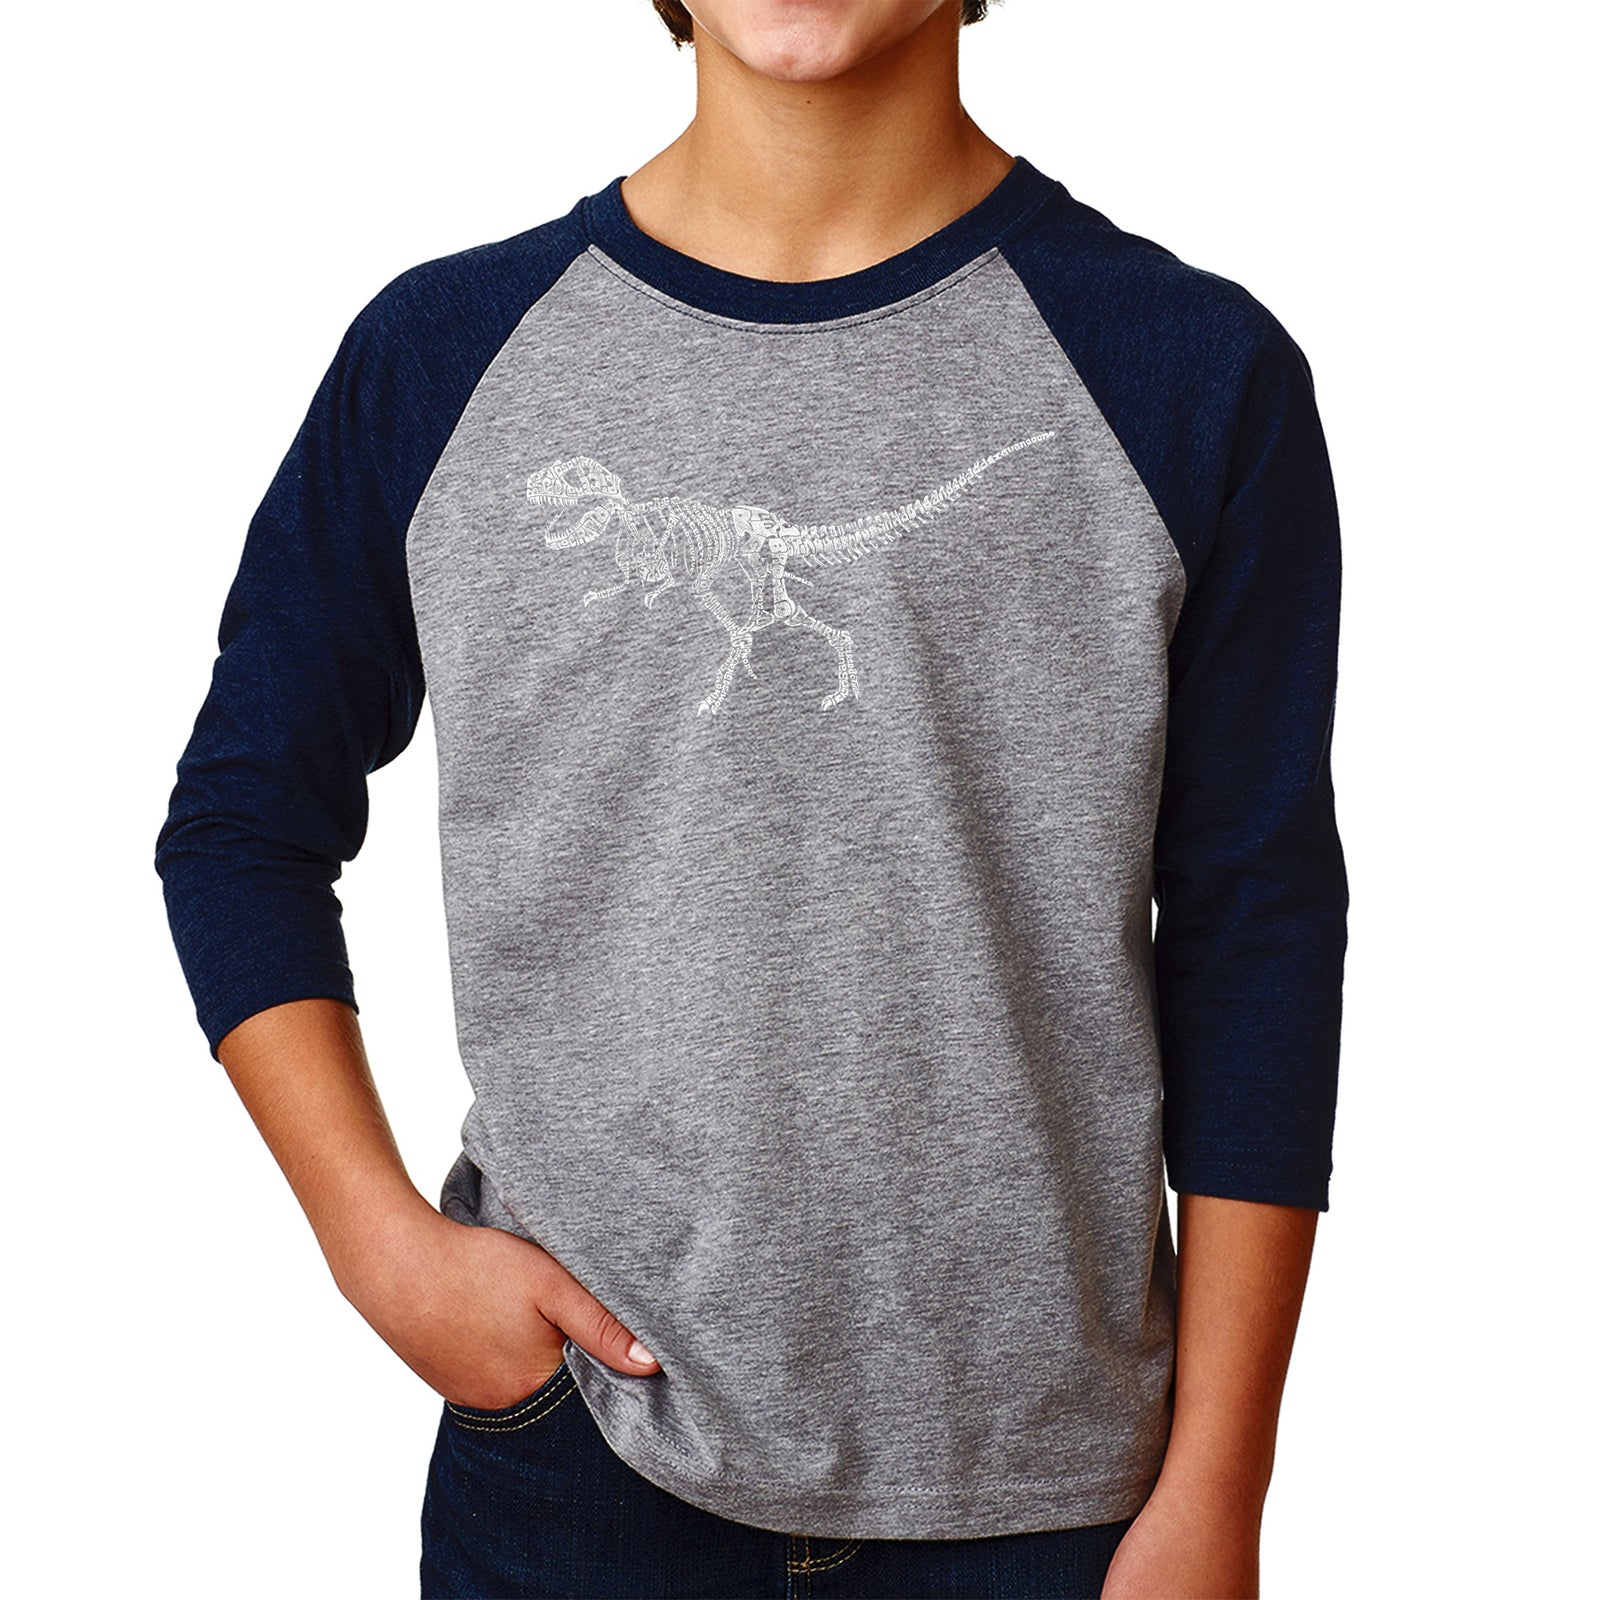 Boy's Raglan Baseball Word Art T-shirt - Dinosaur T-Rex Skeleton